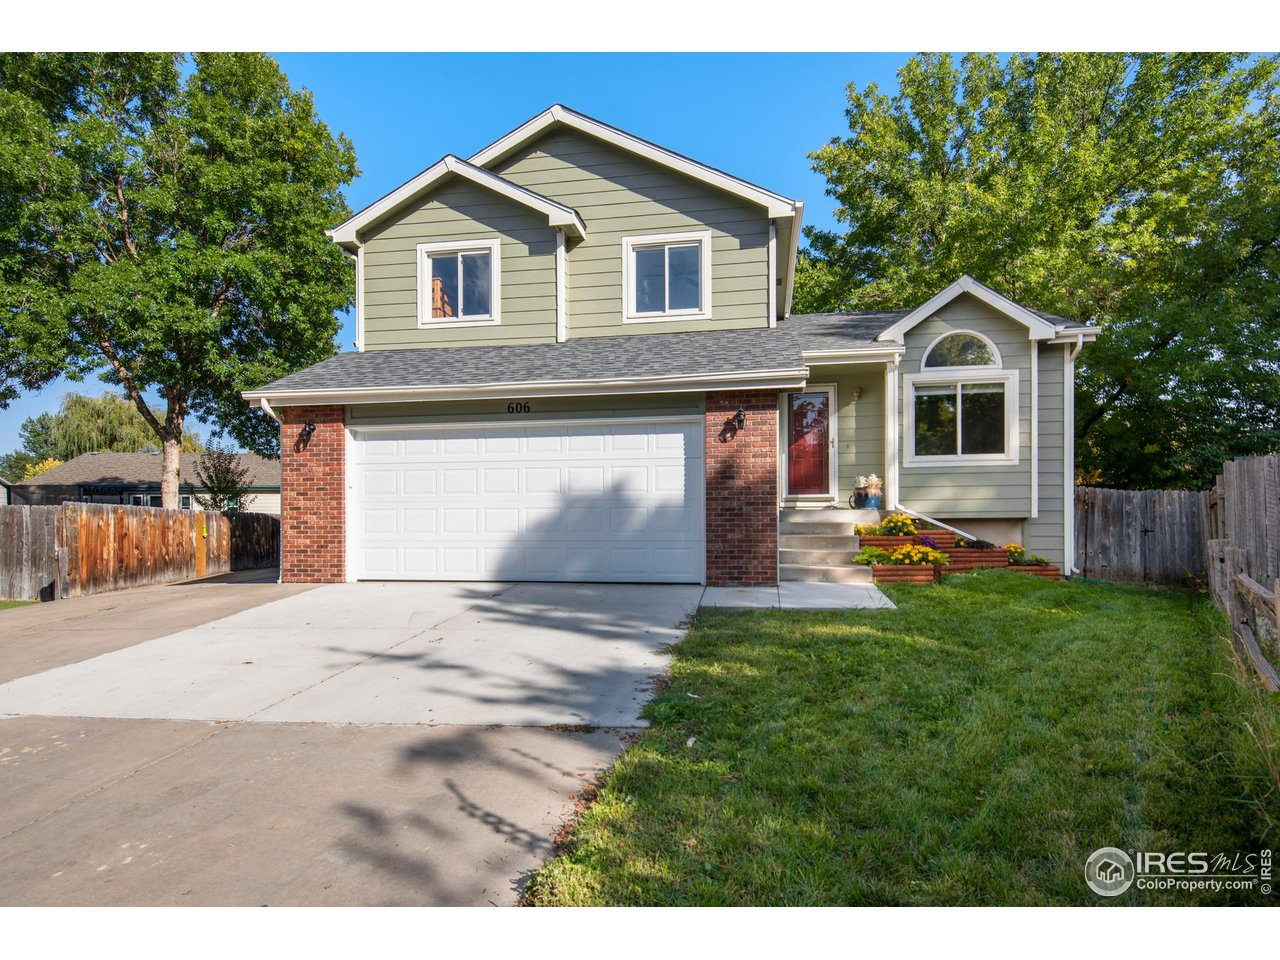 606 Justice Dr, Fort Collins CO 80526